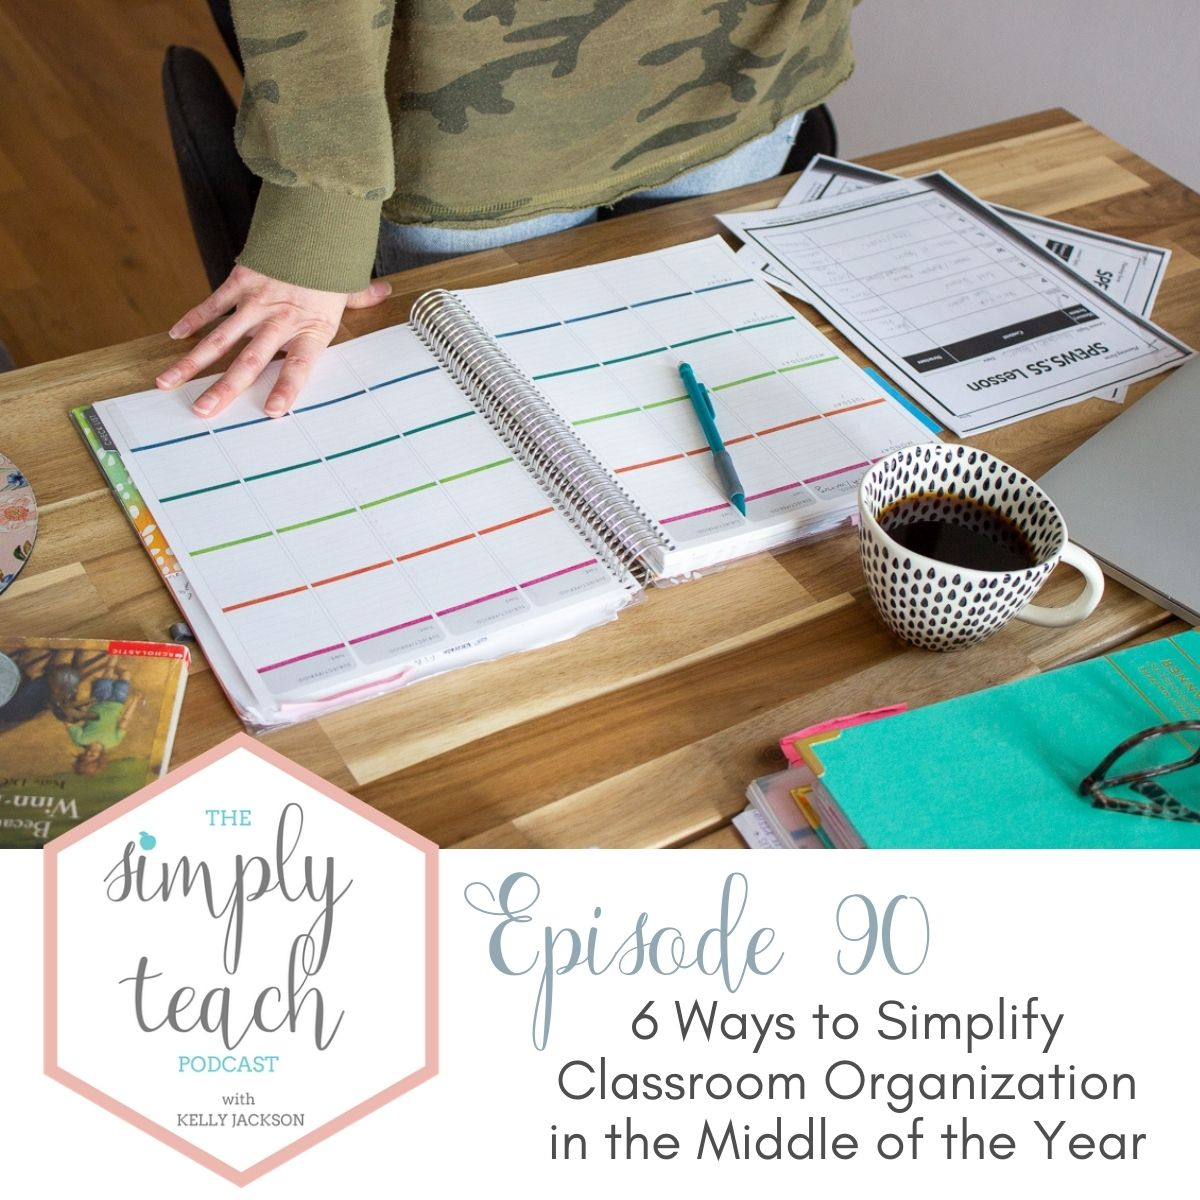 Teacher's desk with planner, coffee, papers, and pencils. Text overlay: Simply Teach Podcast Episode 90: 6 Ways to Simplify Classroom Organization in the Middle of the Year.